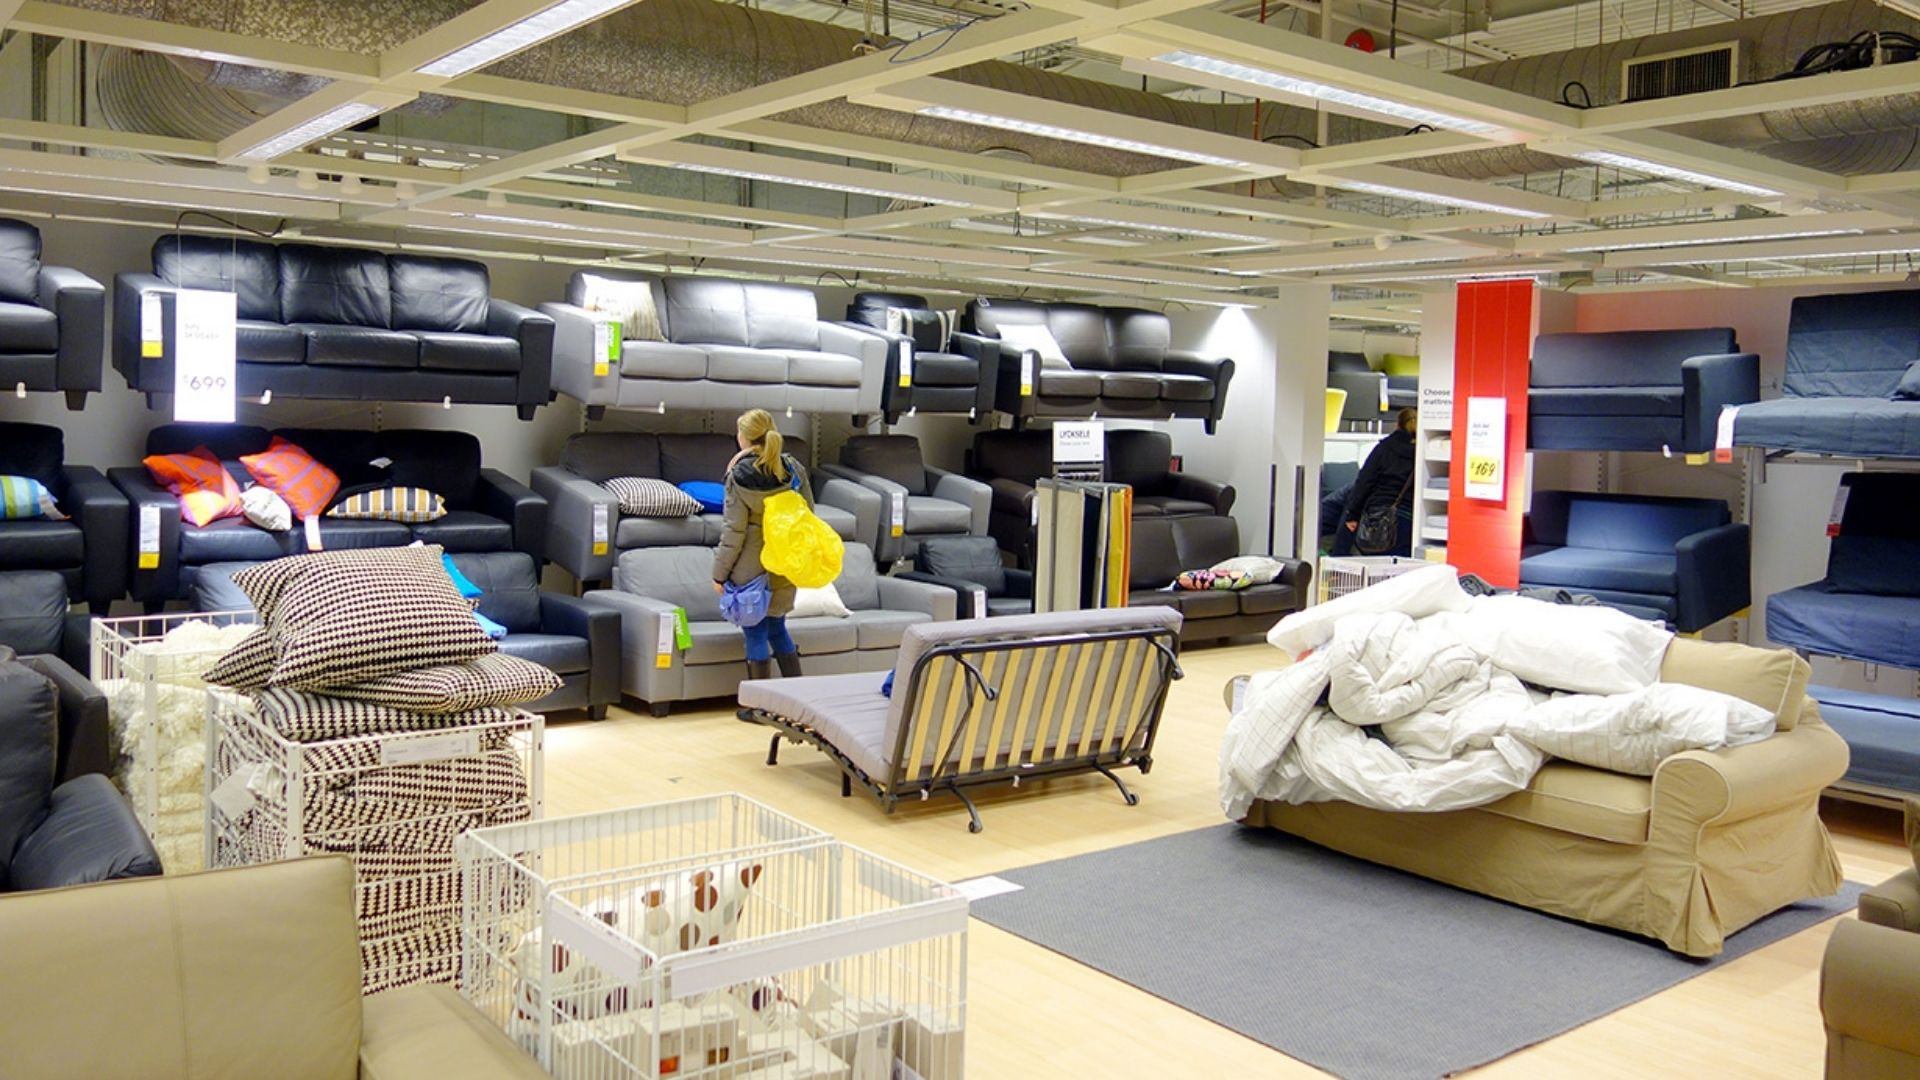 People browsing in a large room filled with a variety of sofas